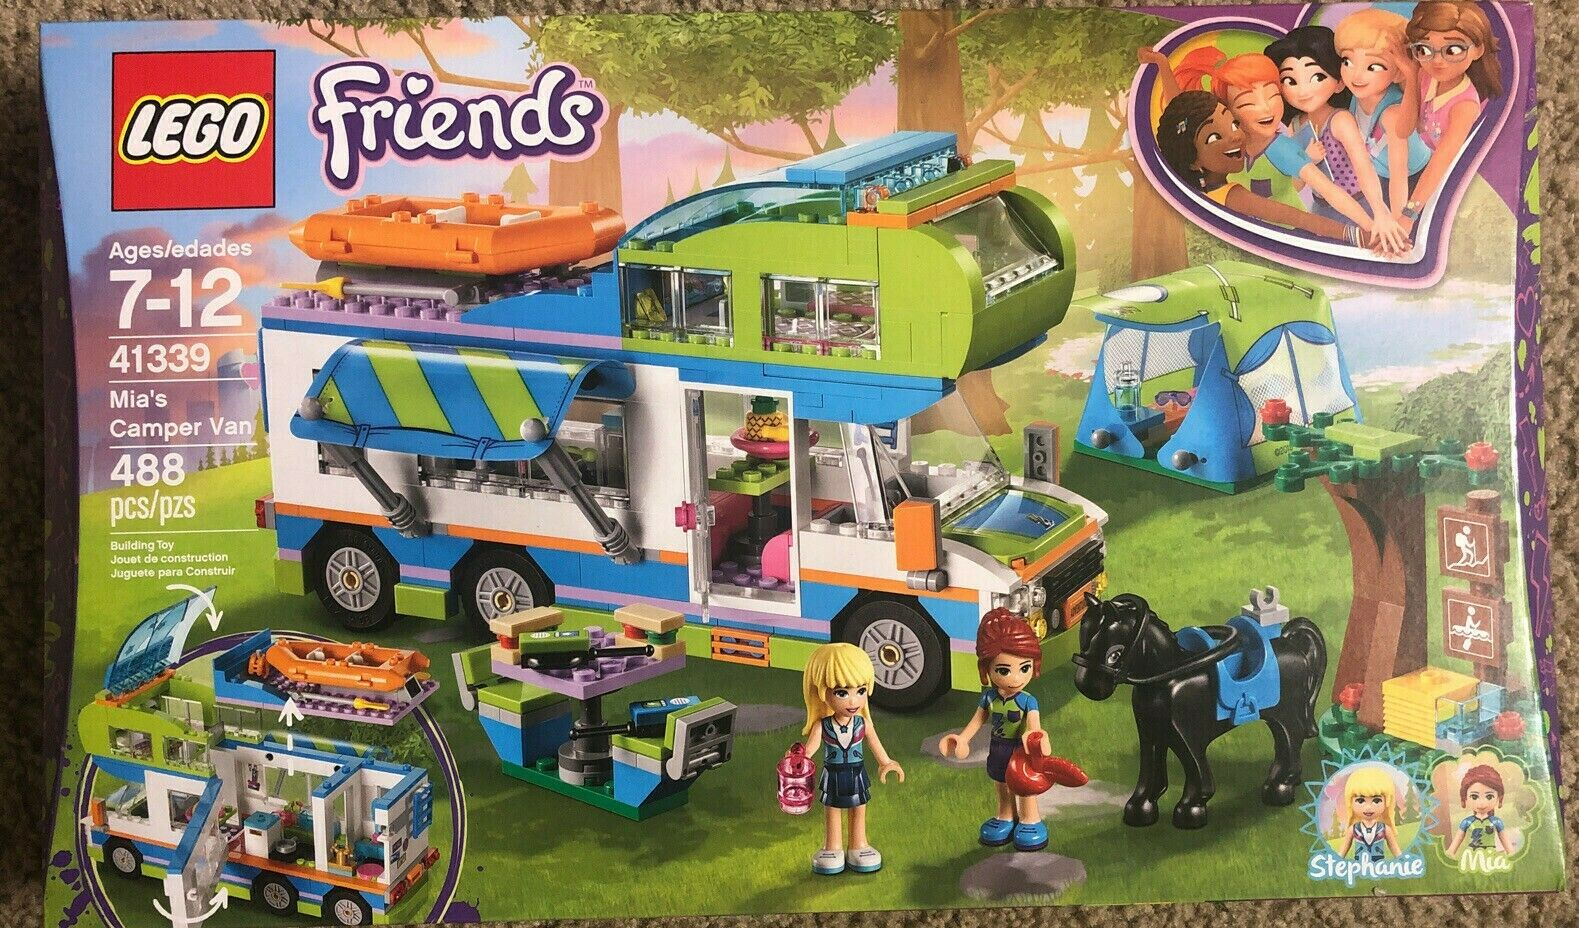 Mia and Stephanie Mini Dolls Build and Play Fun Toys for Kids LEGO 41339 Friends Heartlake Mia/'s Camper Van Playset